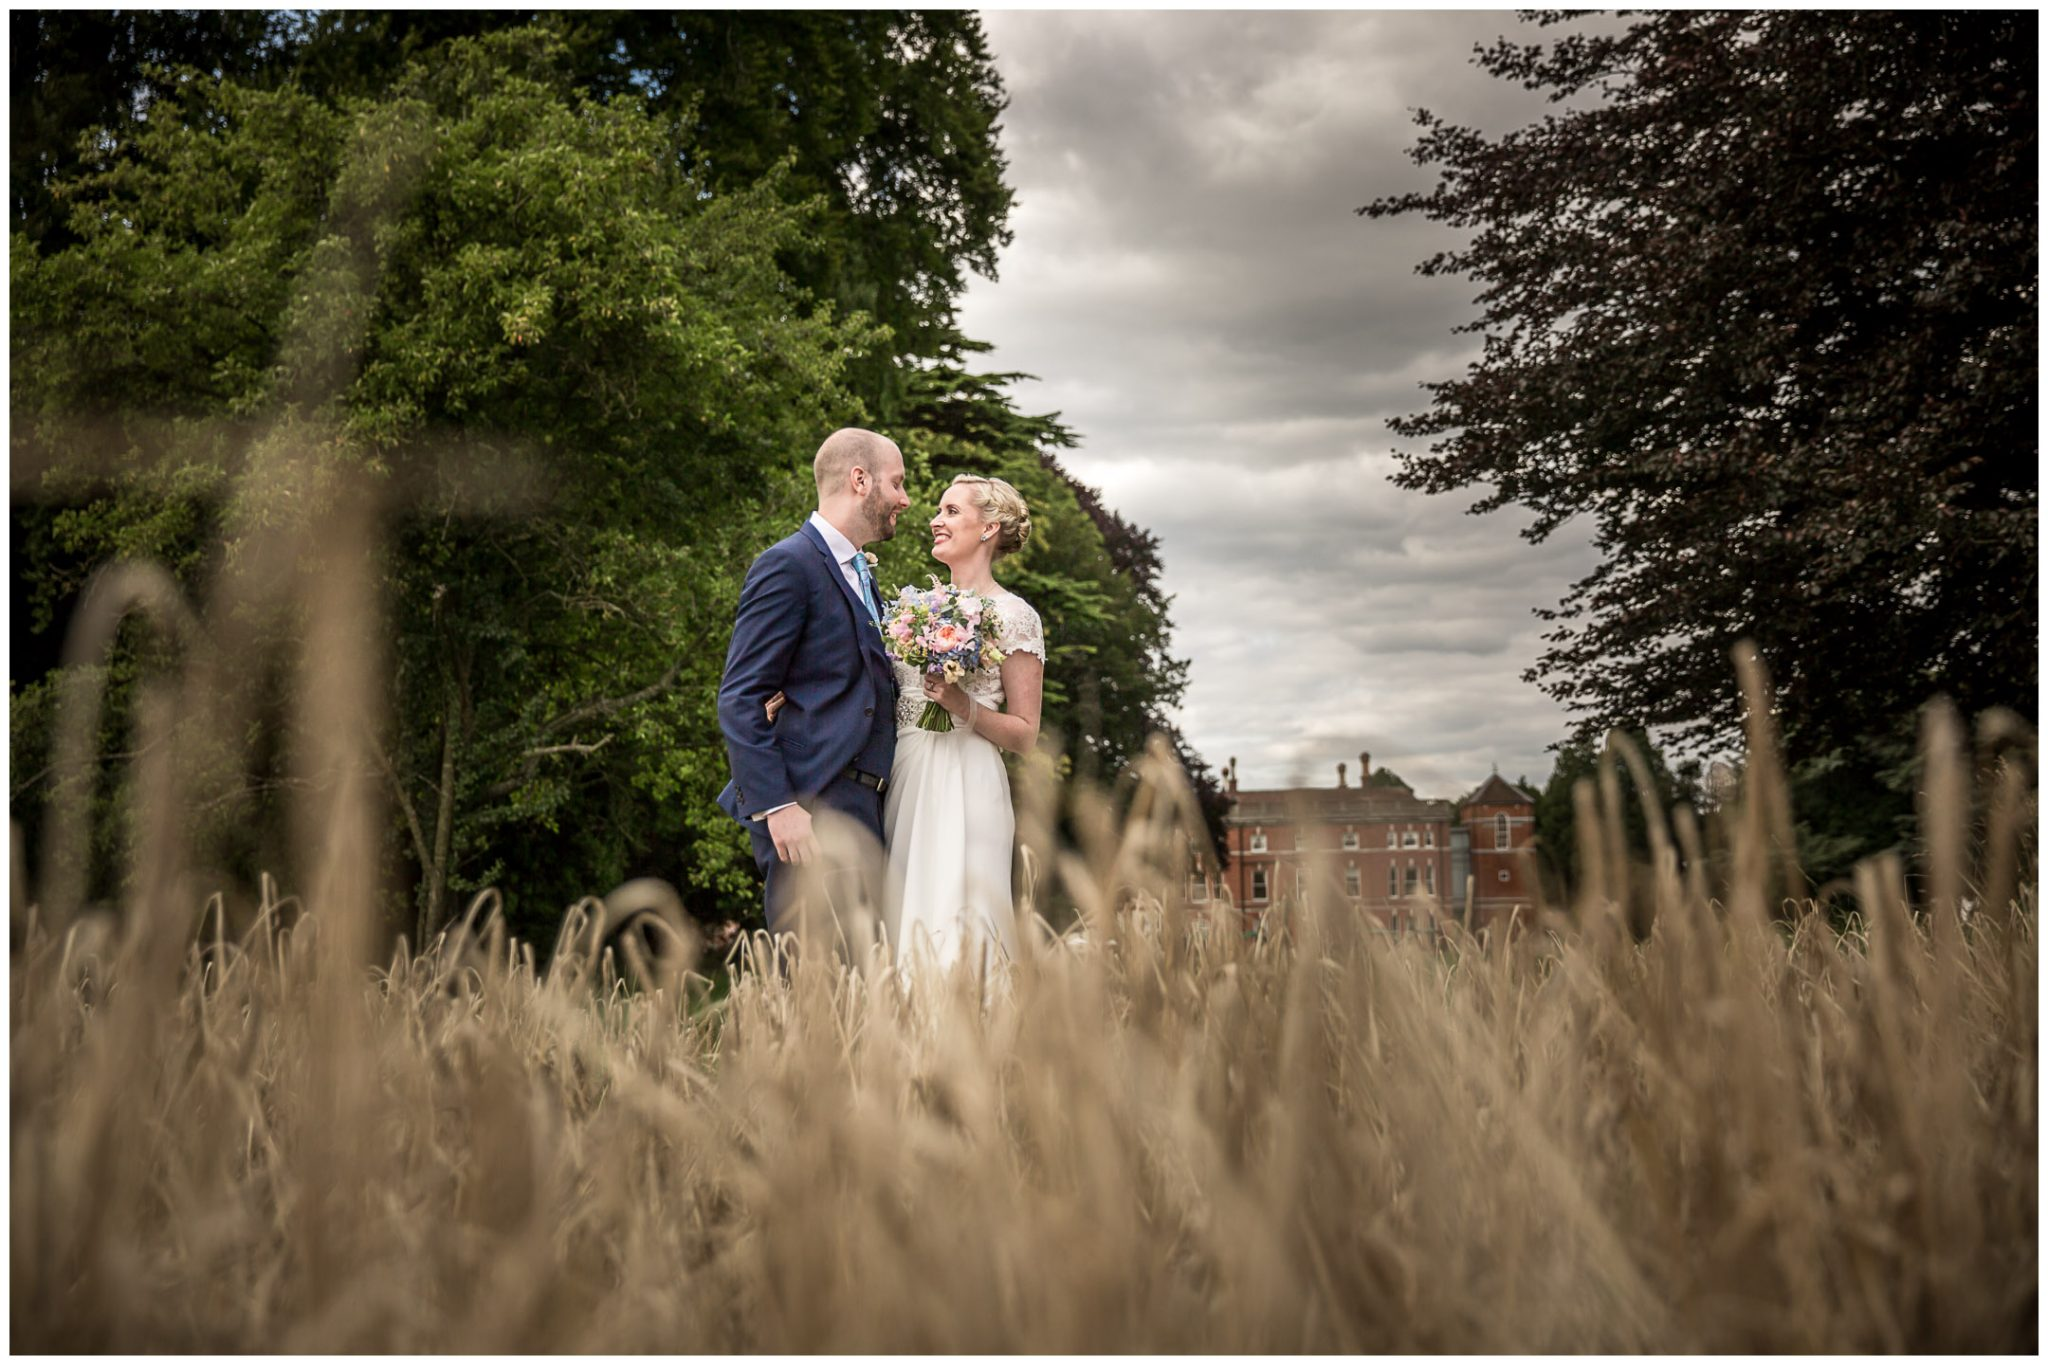 Oakley Hall wedding photography bride and groom portrait in grounds